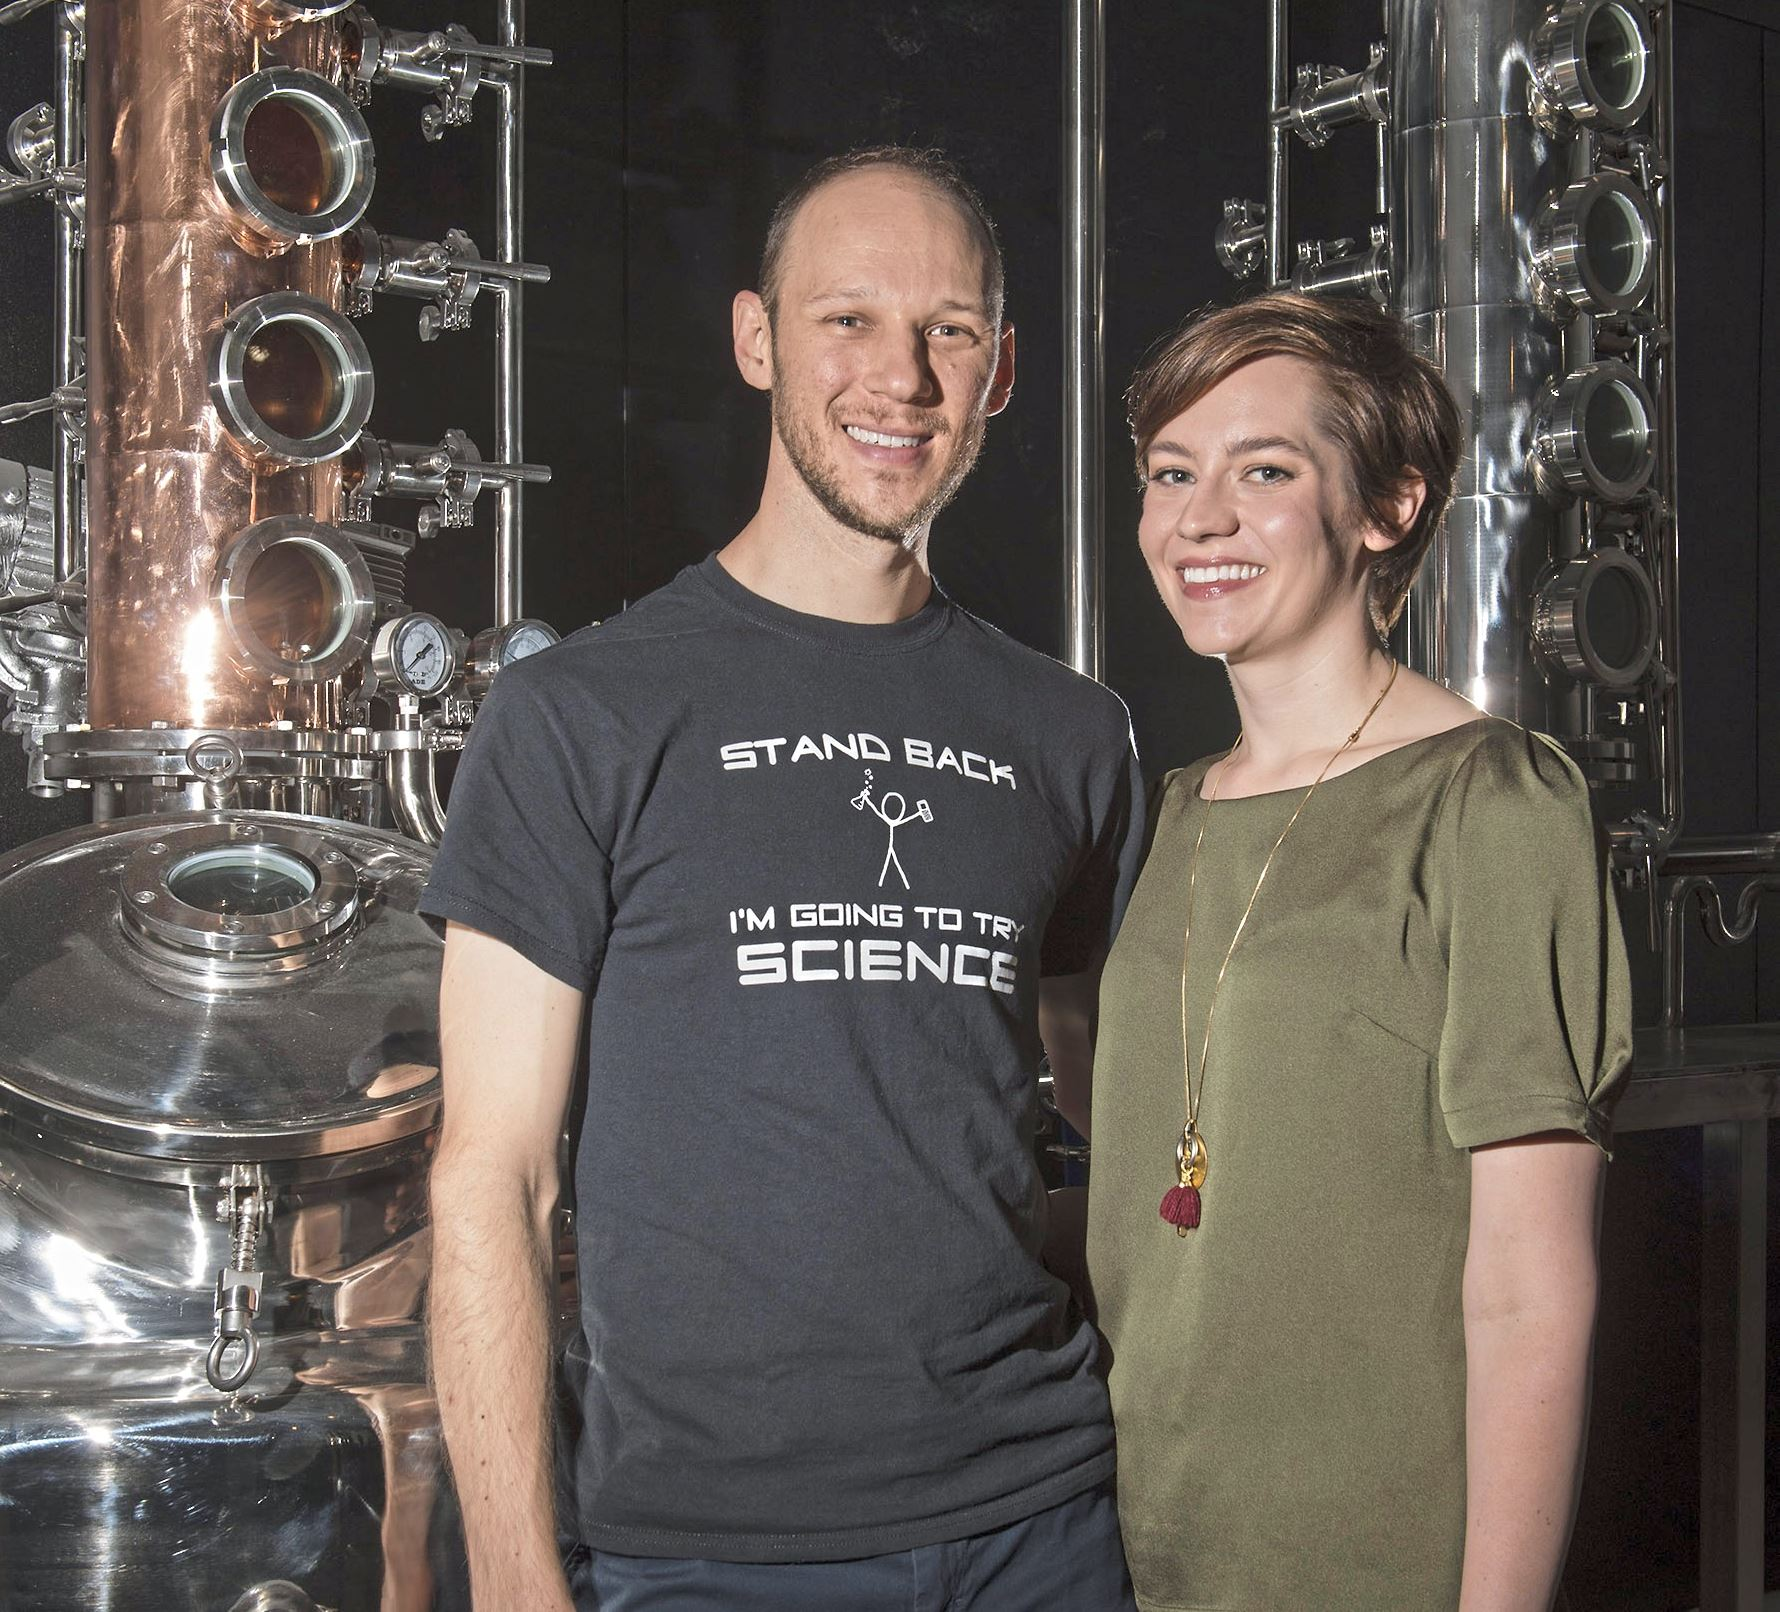 20171012scCarnegie22-2 Owners Ryan and Sarah Kanto pose for a portrait with their still at Quantum Spirits distillery in Carnegie.